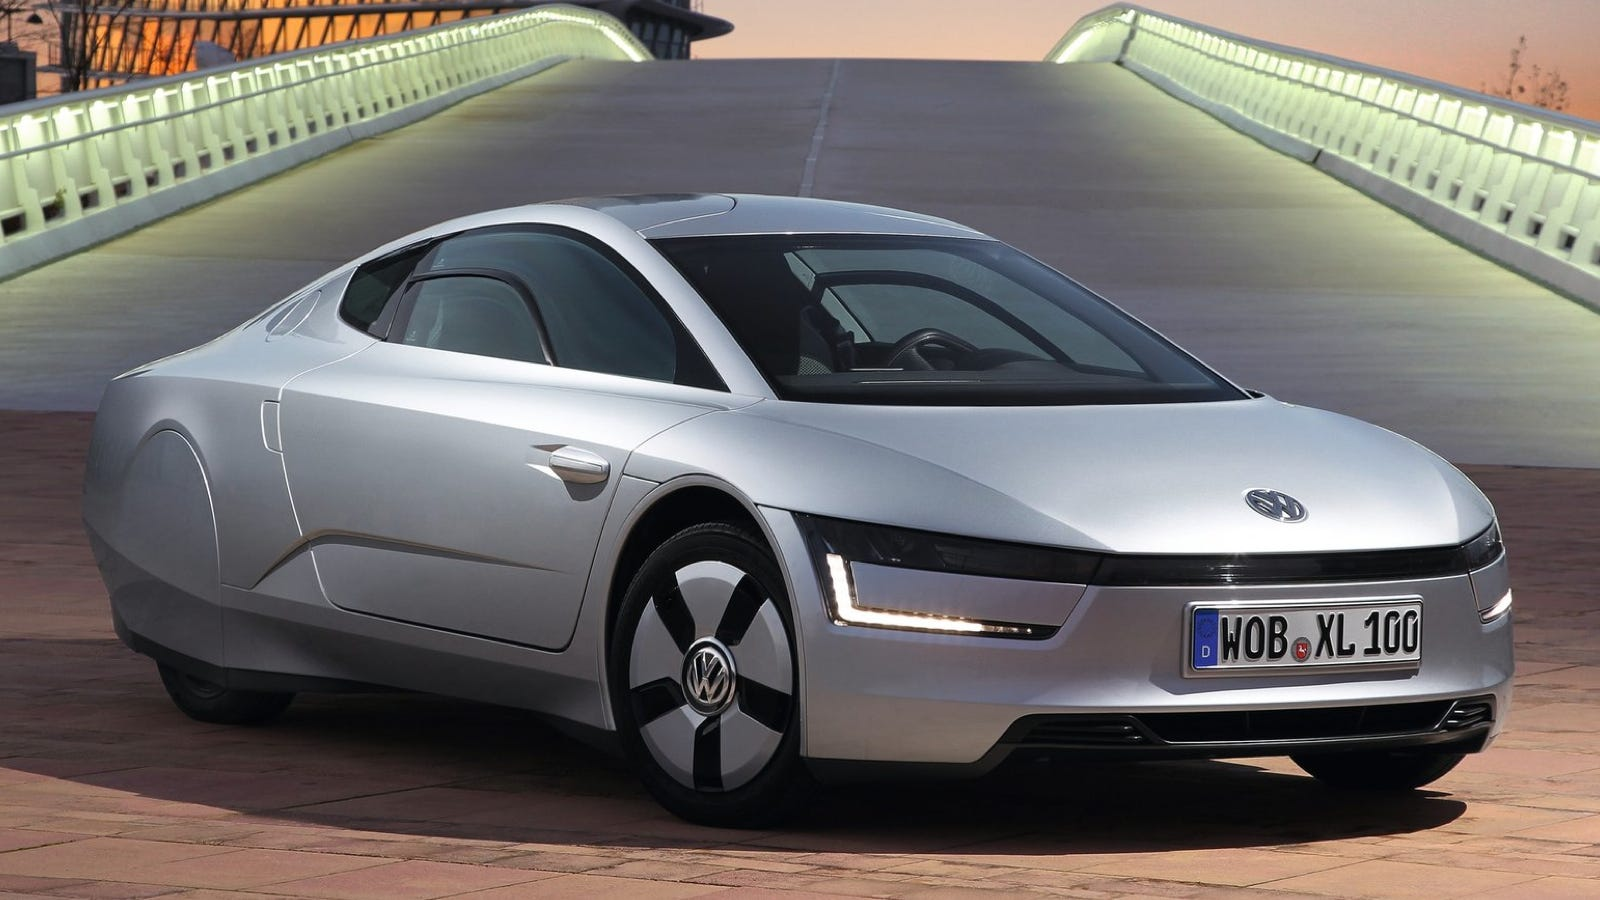 Wait The Volkswagen XL1 Is Going To Cost How Much